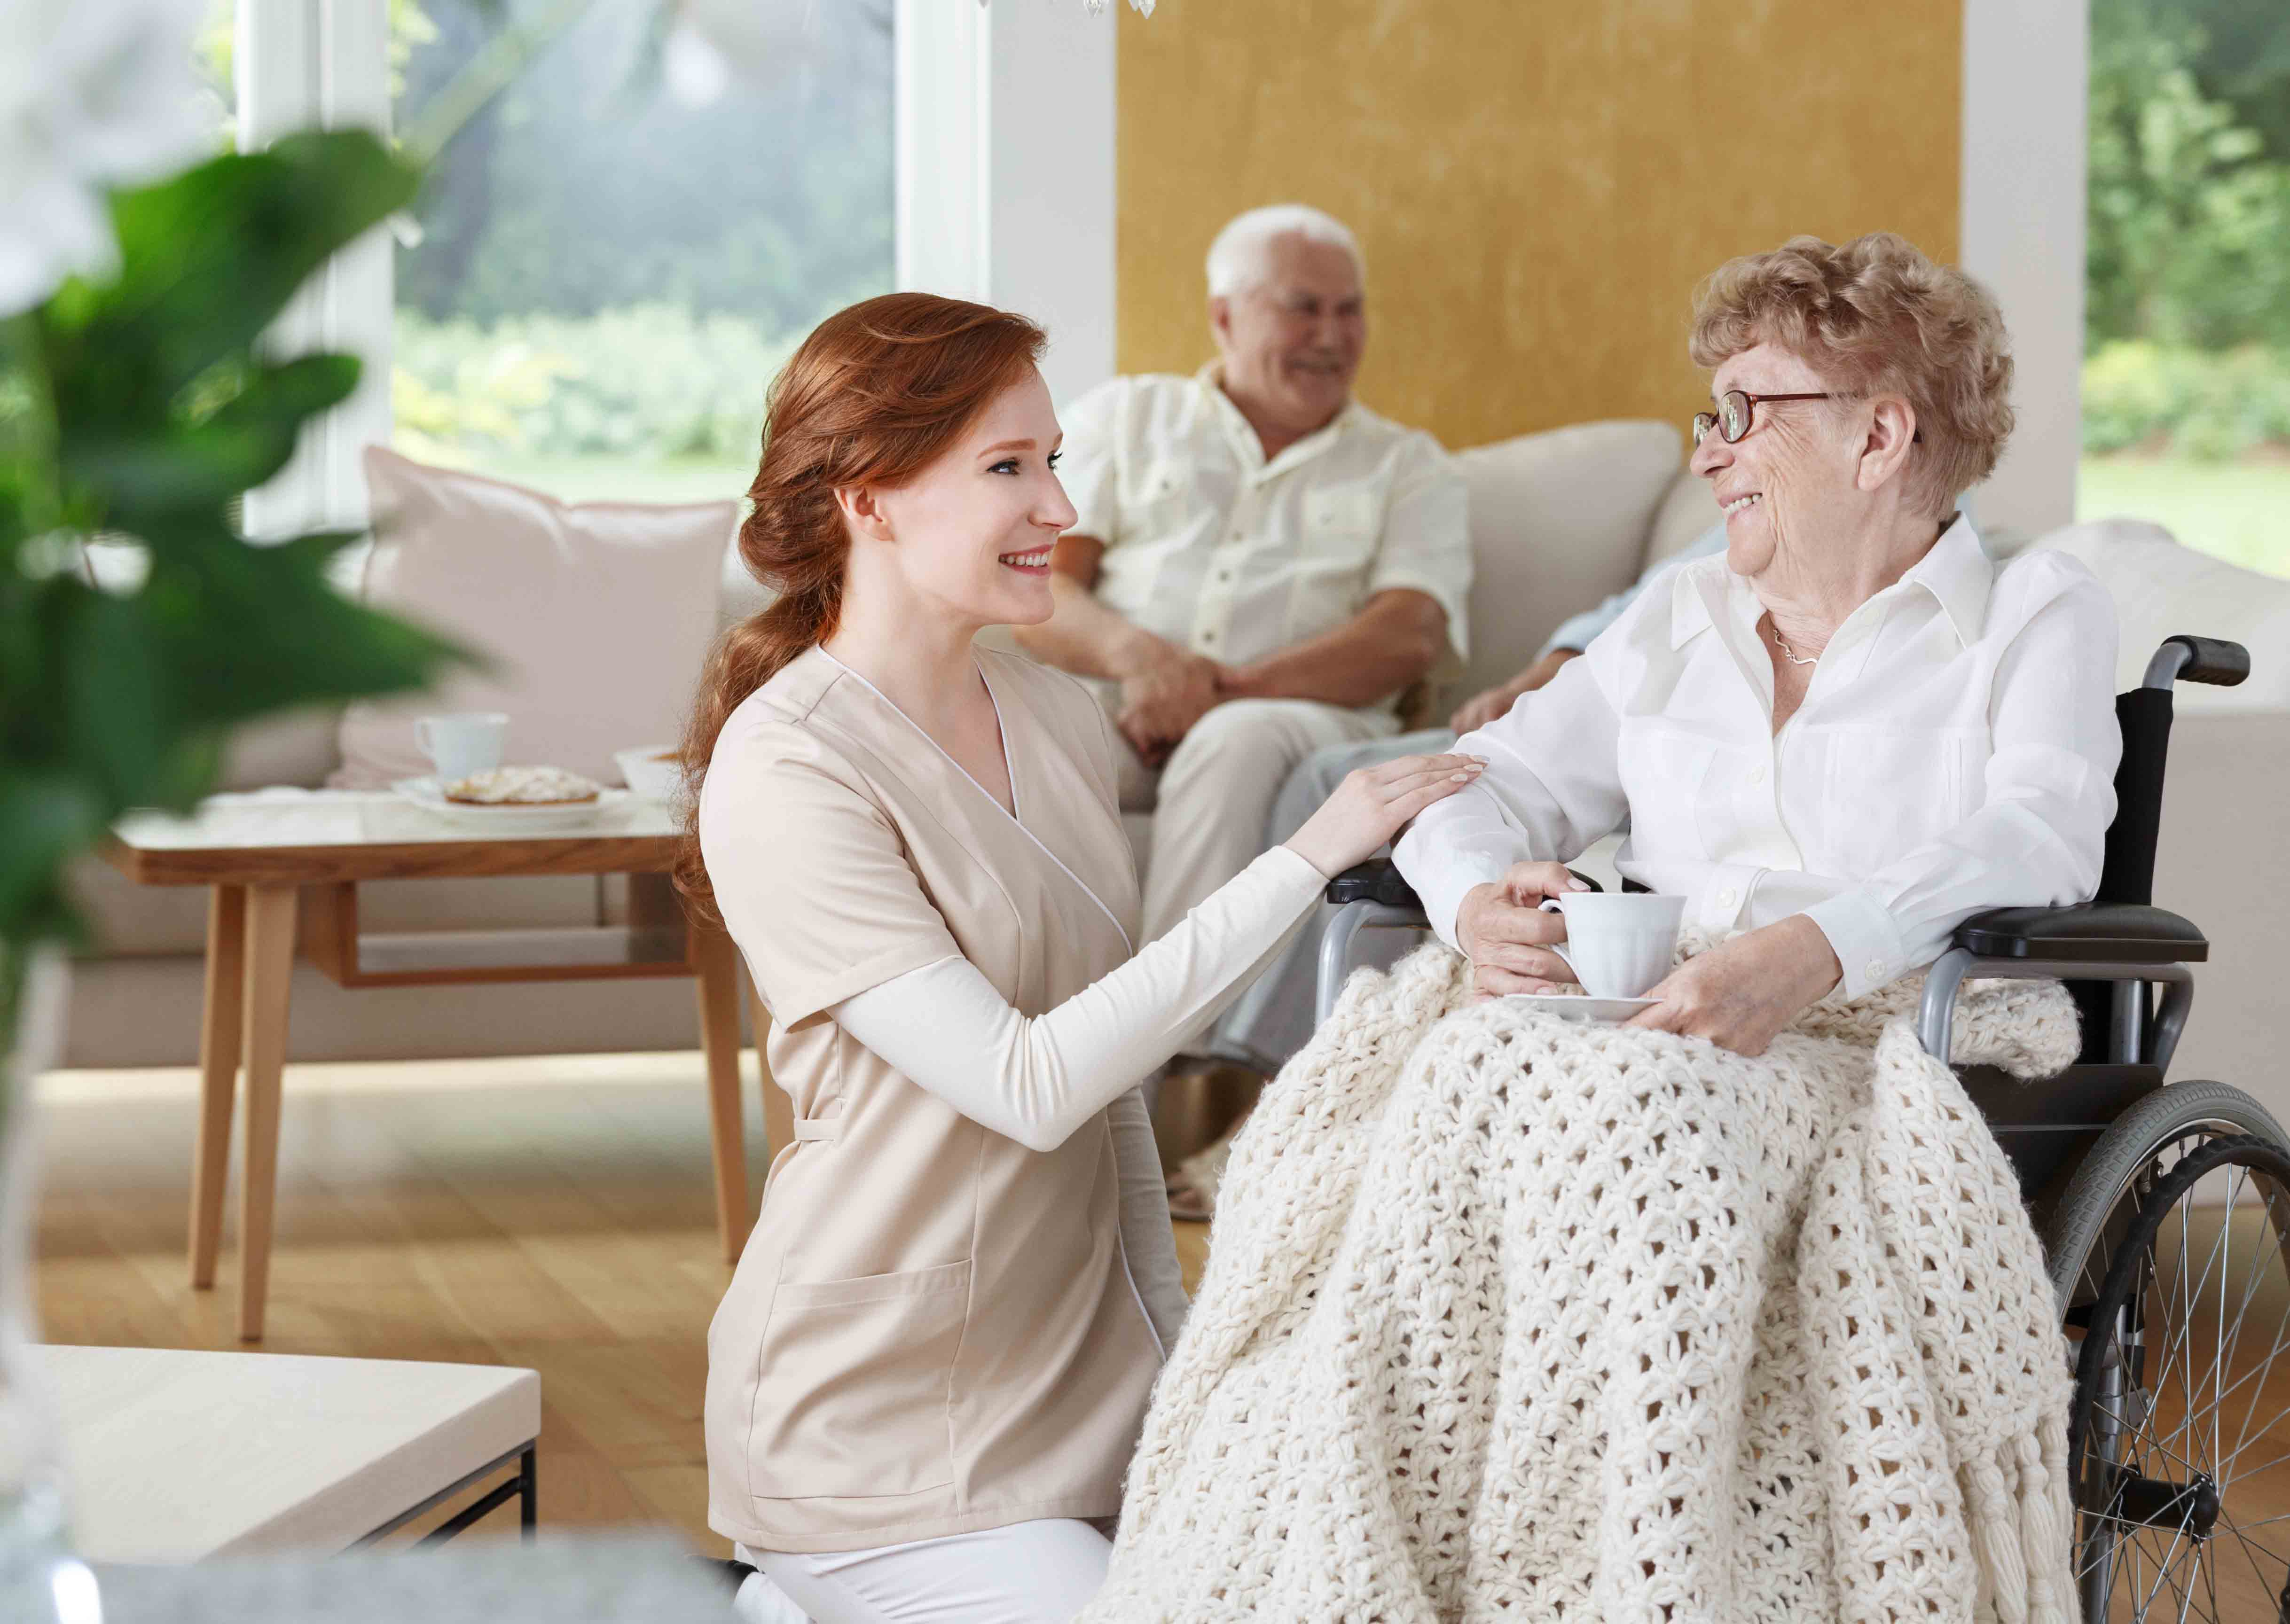 Five Reasons Why Caregivers Love Their Jobs